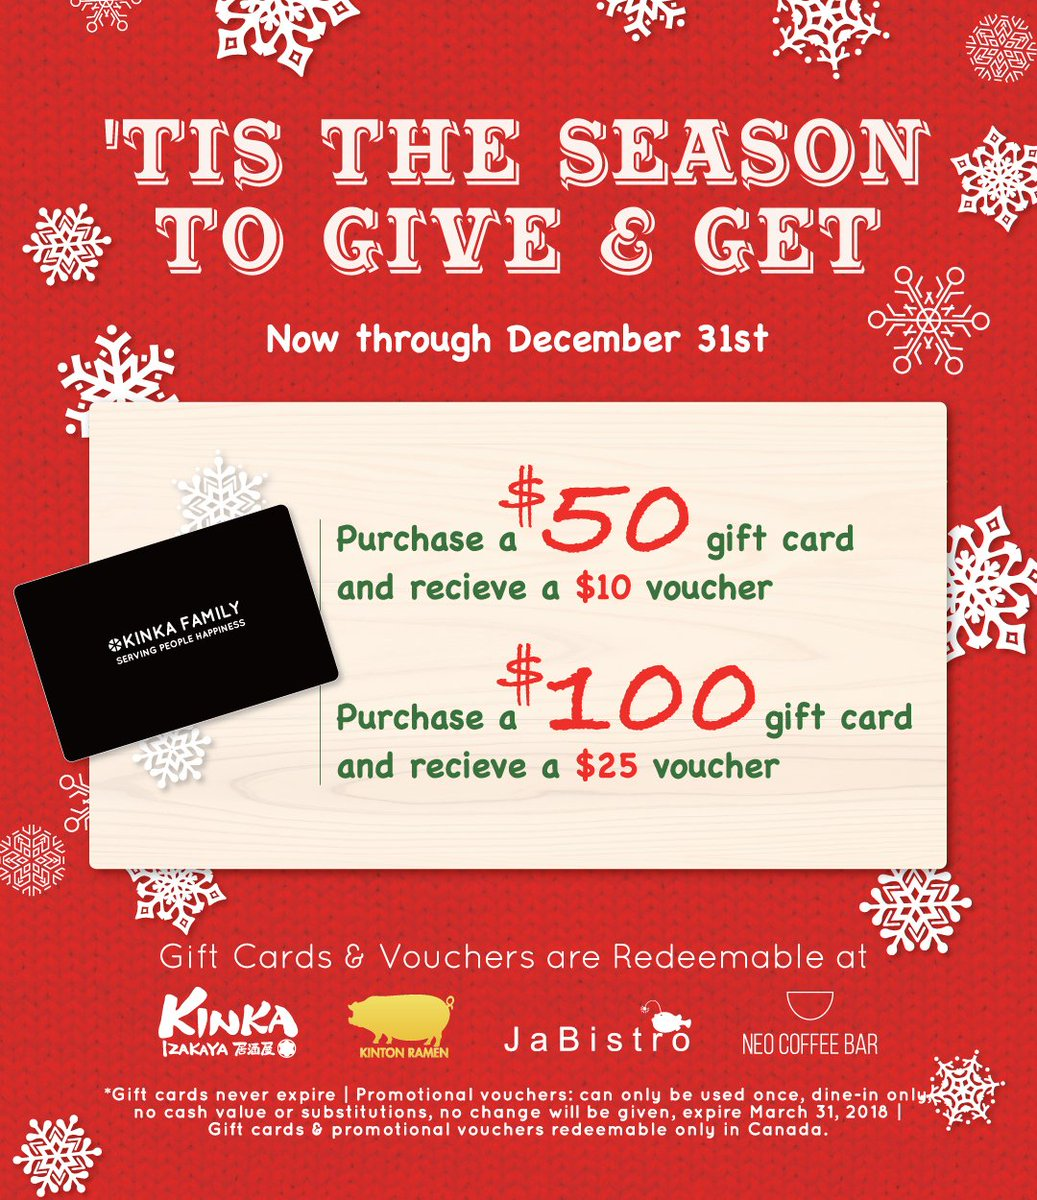 kinka family on twitter christmas is over but our gift card deal isnt purchase a gift card at any kinkafamily restaurant location before december - Christmas Gift Card Deals